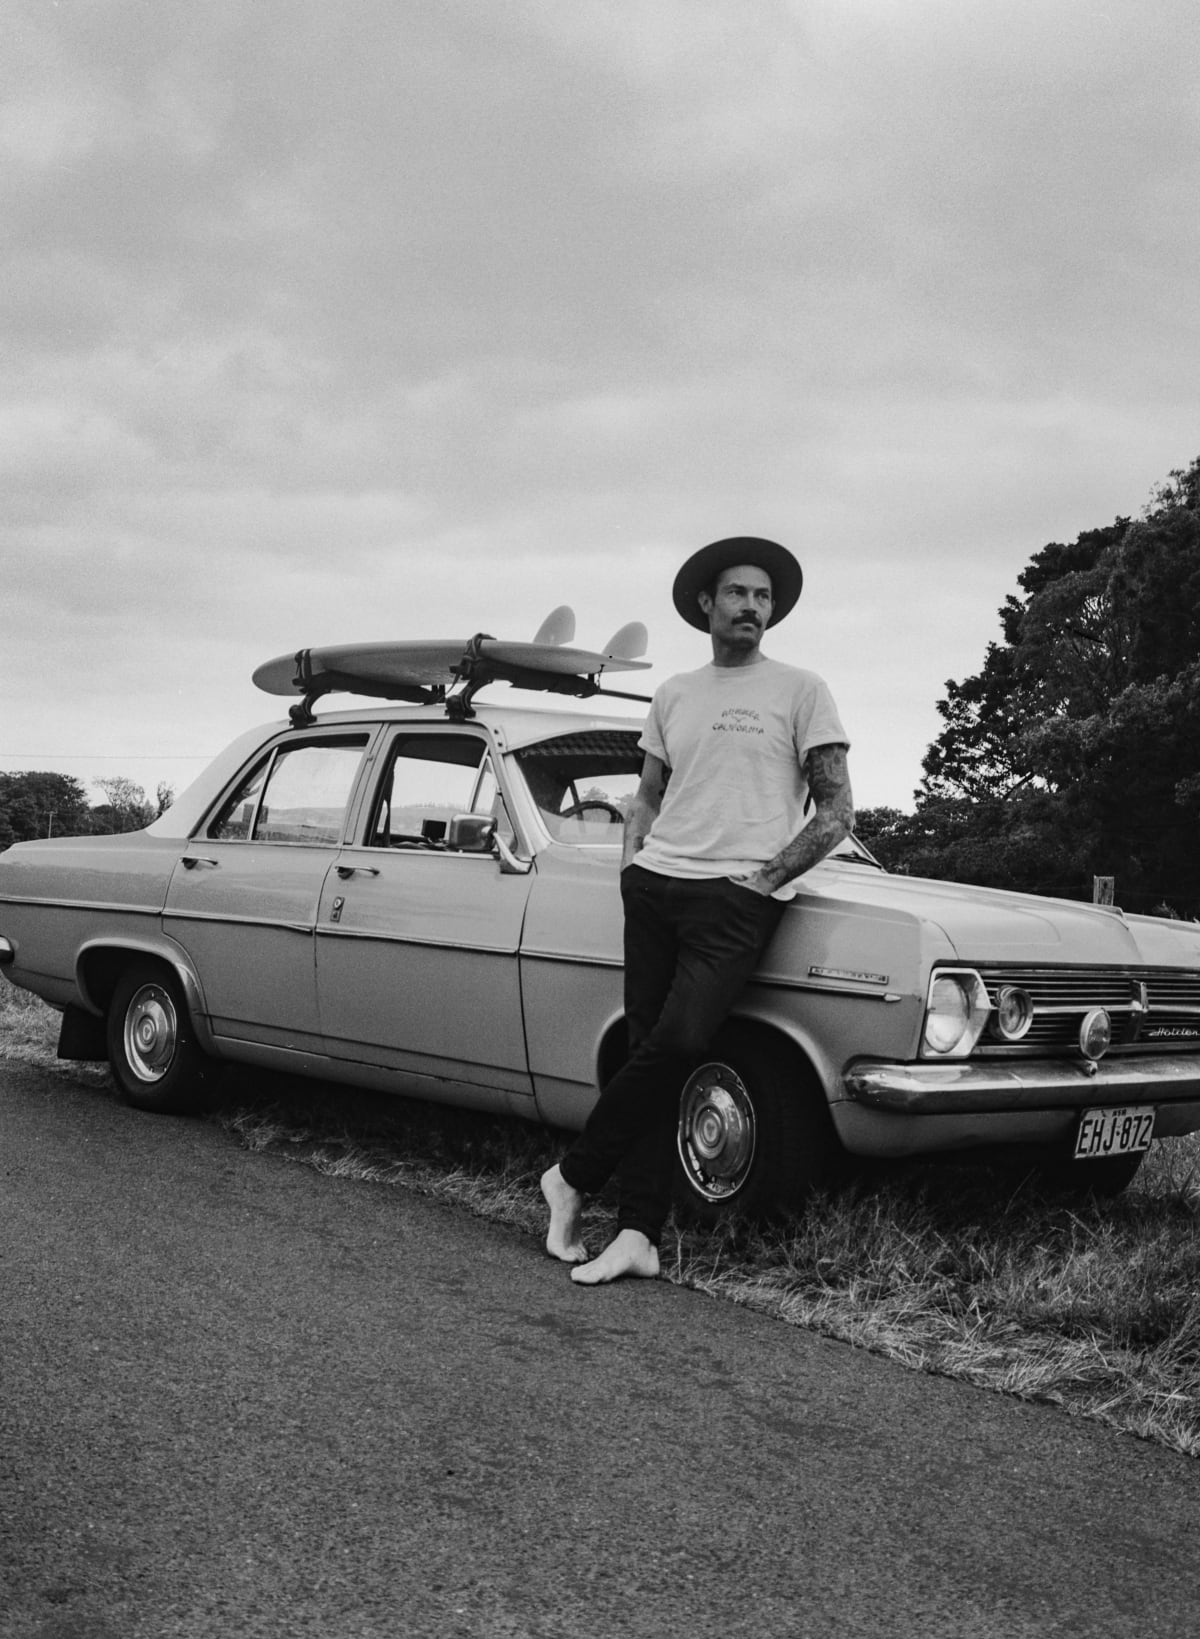 Rob McCann posing with a nice vintage car and a surfboard